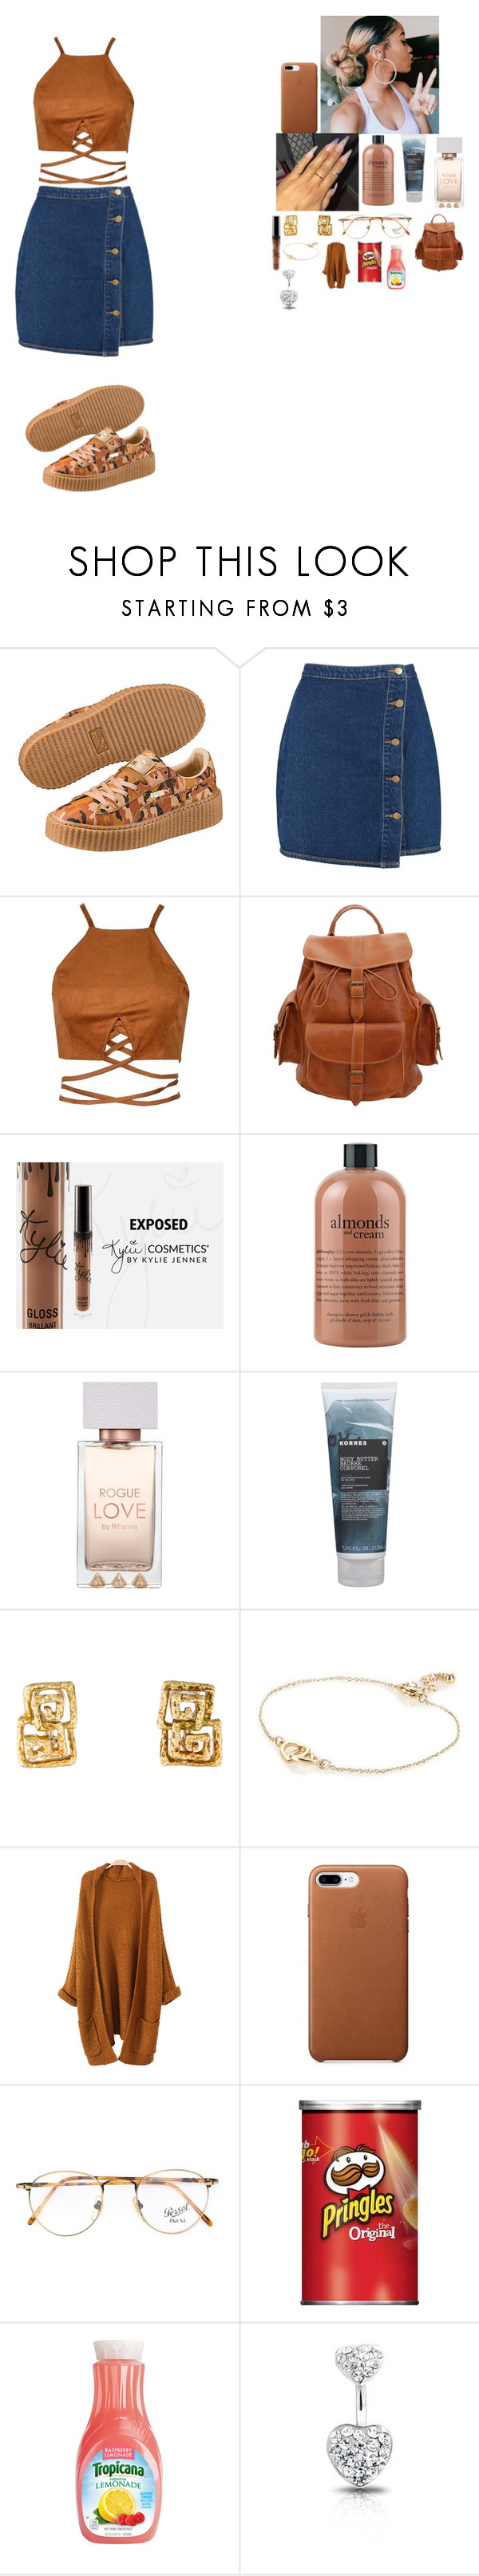 """""""~ school outfit ~"""" by foodislyfe ❤ liked on Polyvore featuring Puma, Boohoo, Grafea, philosophy, Korres, River Island, Persol and Bling Jewelry"""